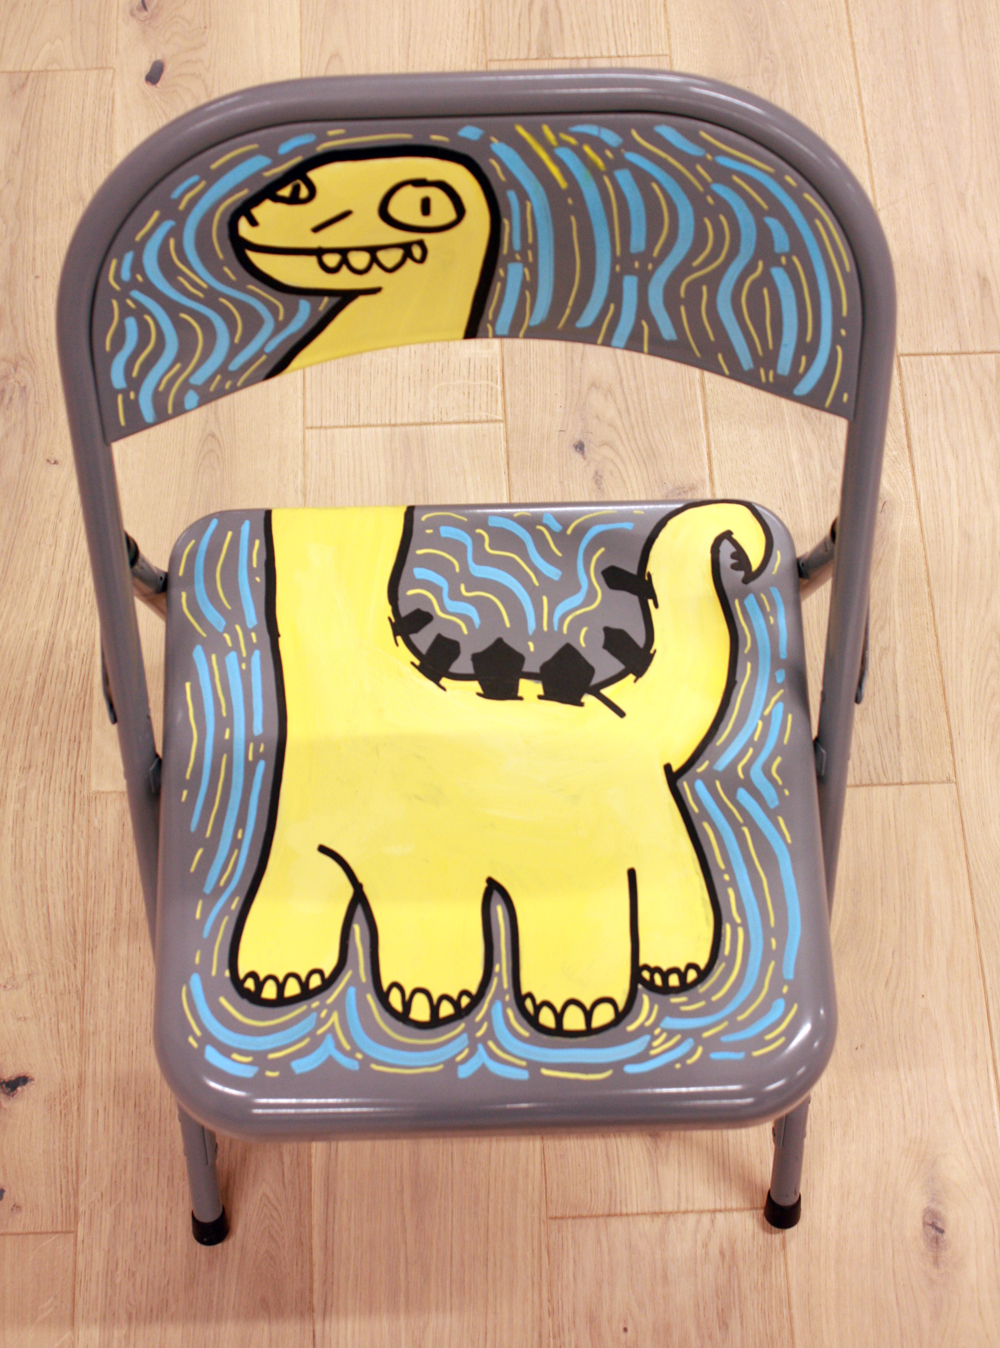 dino, dinosaur doodle, painting on chair